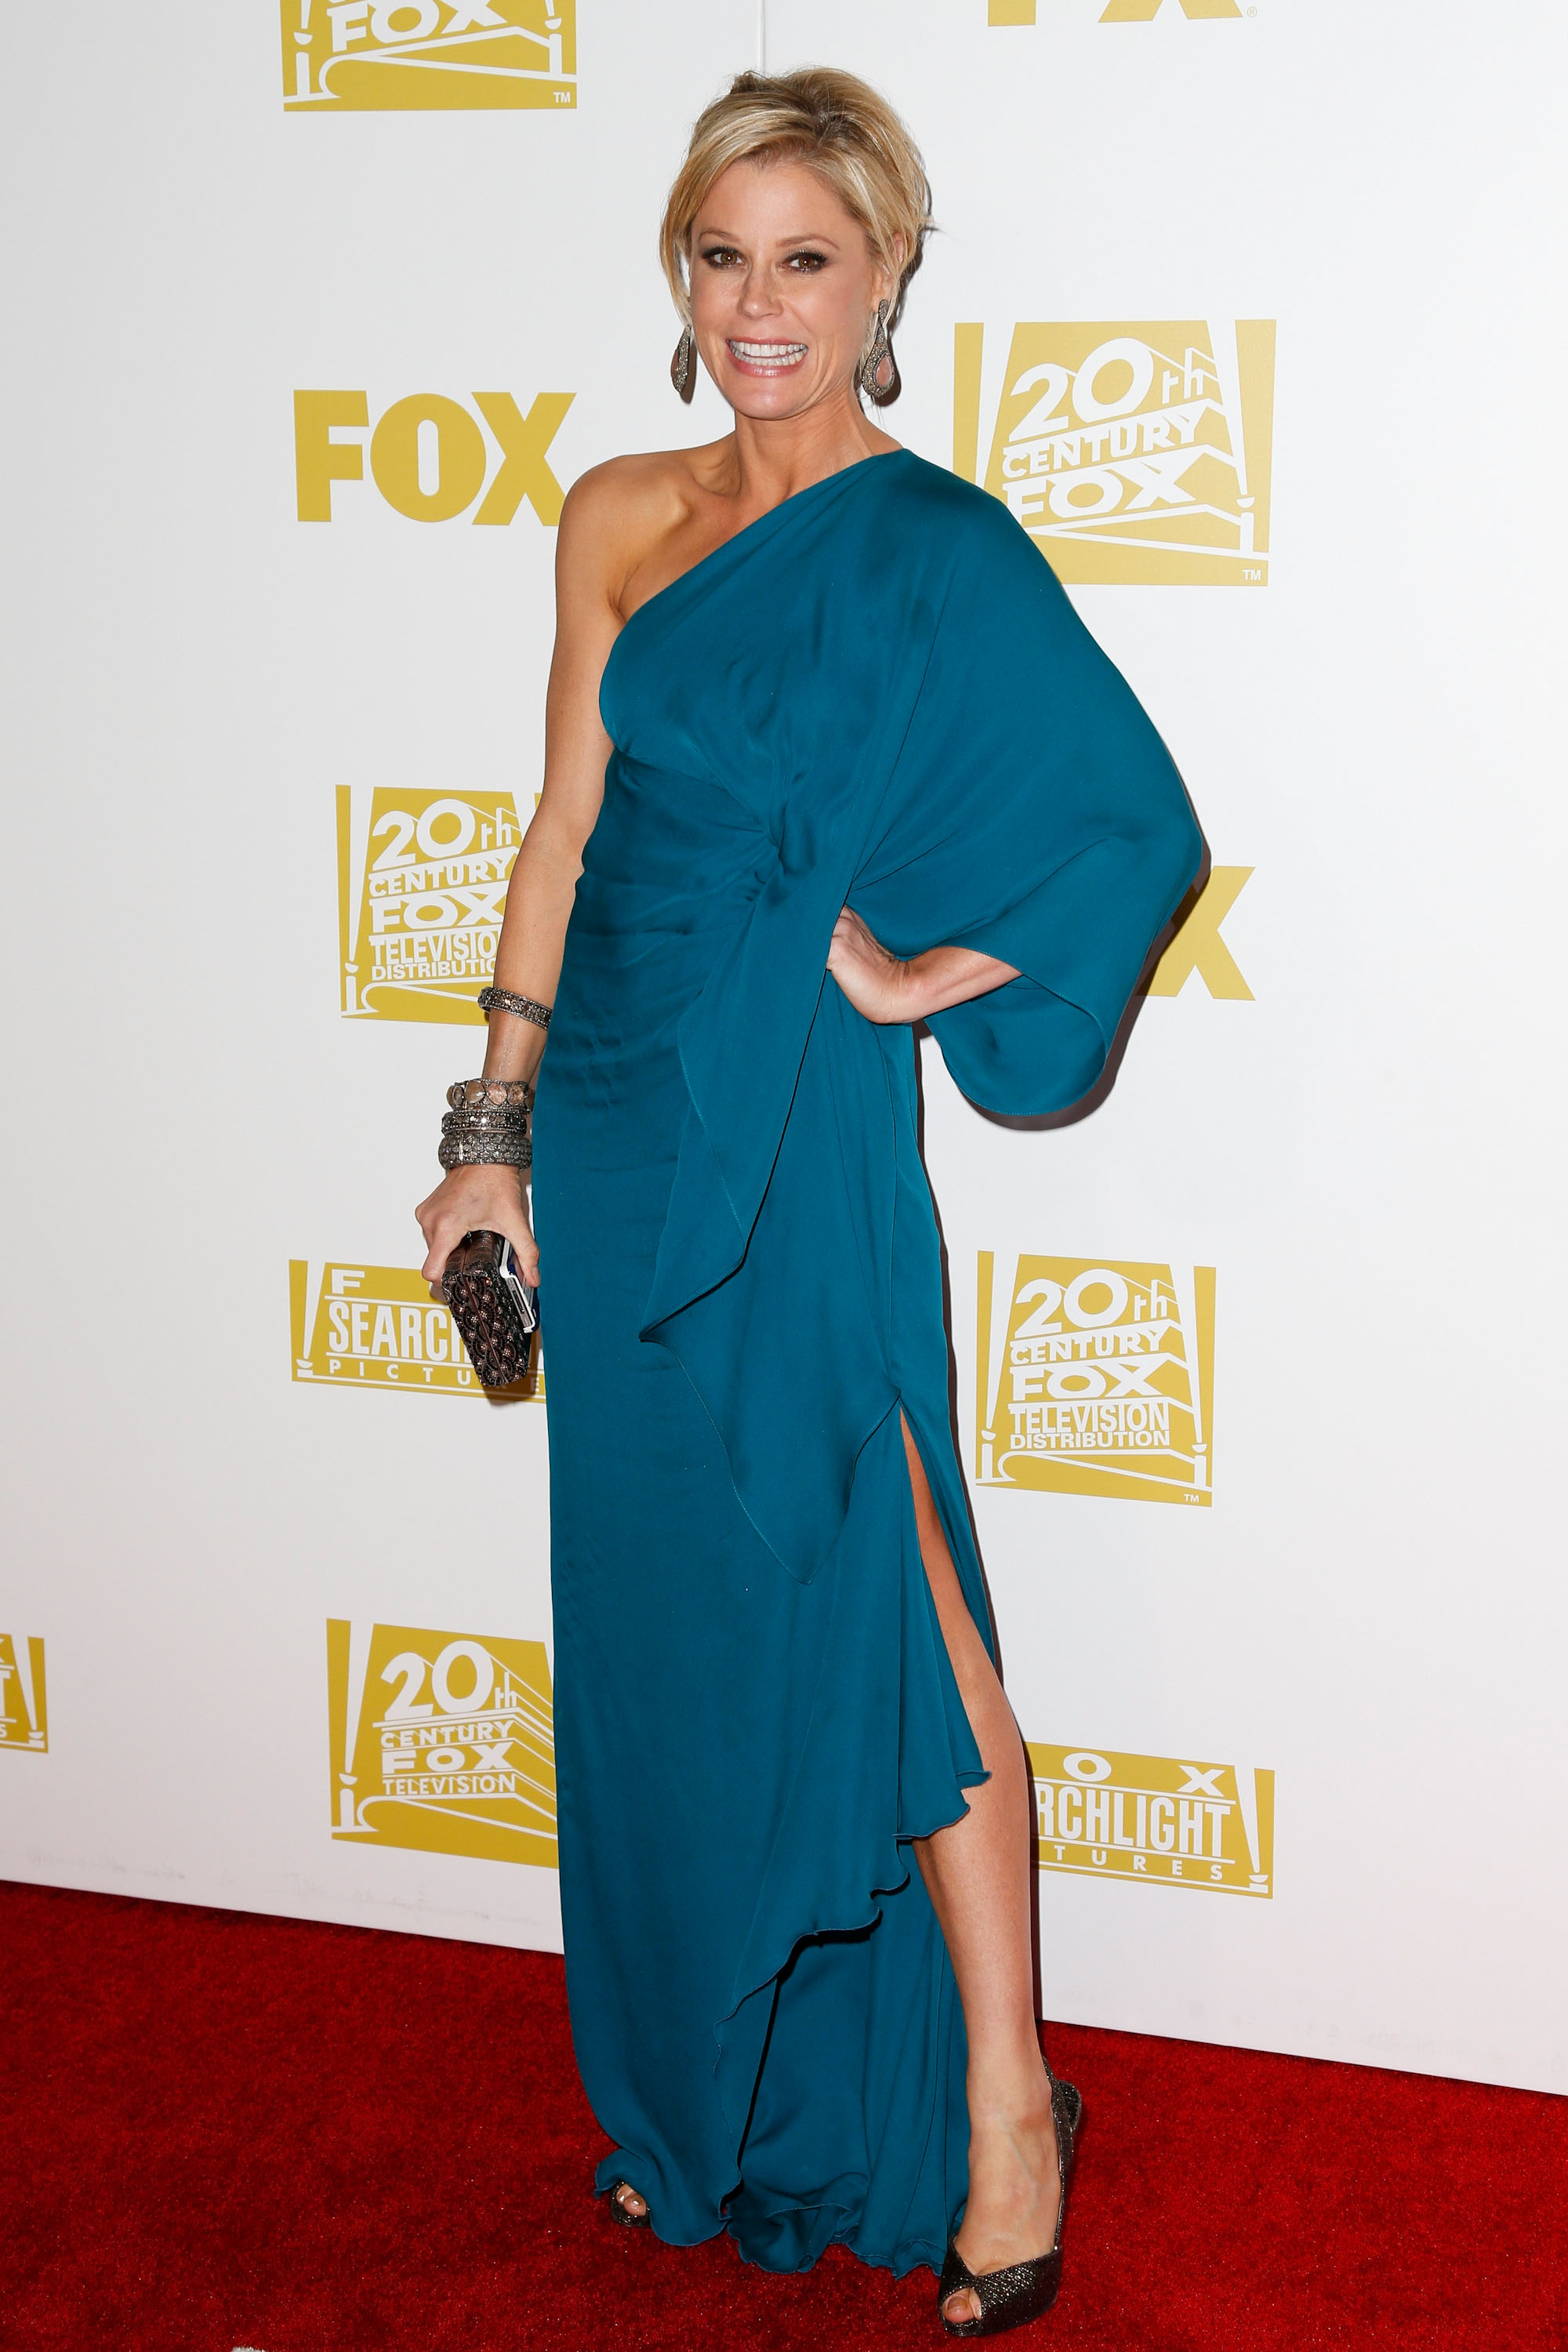 Julie Bowen attended the Fox Searchlight party.